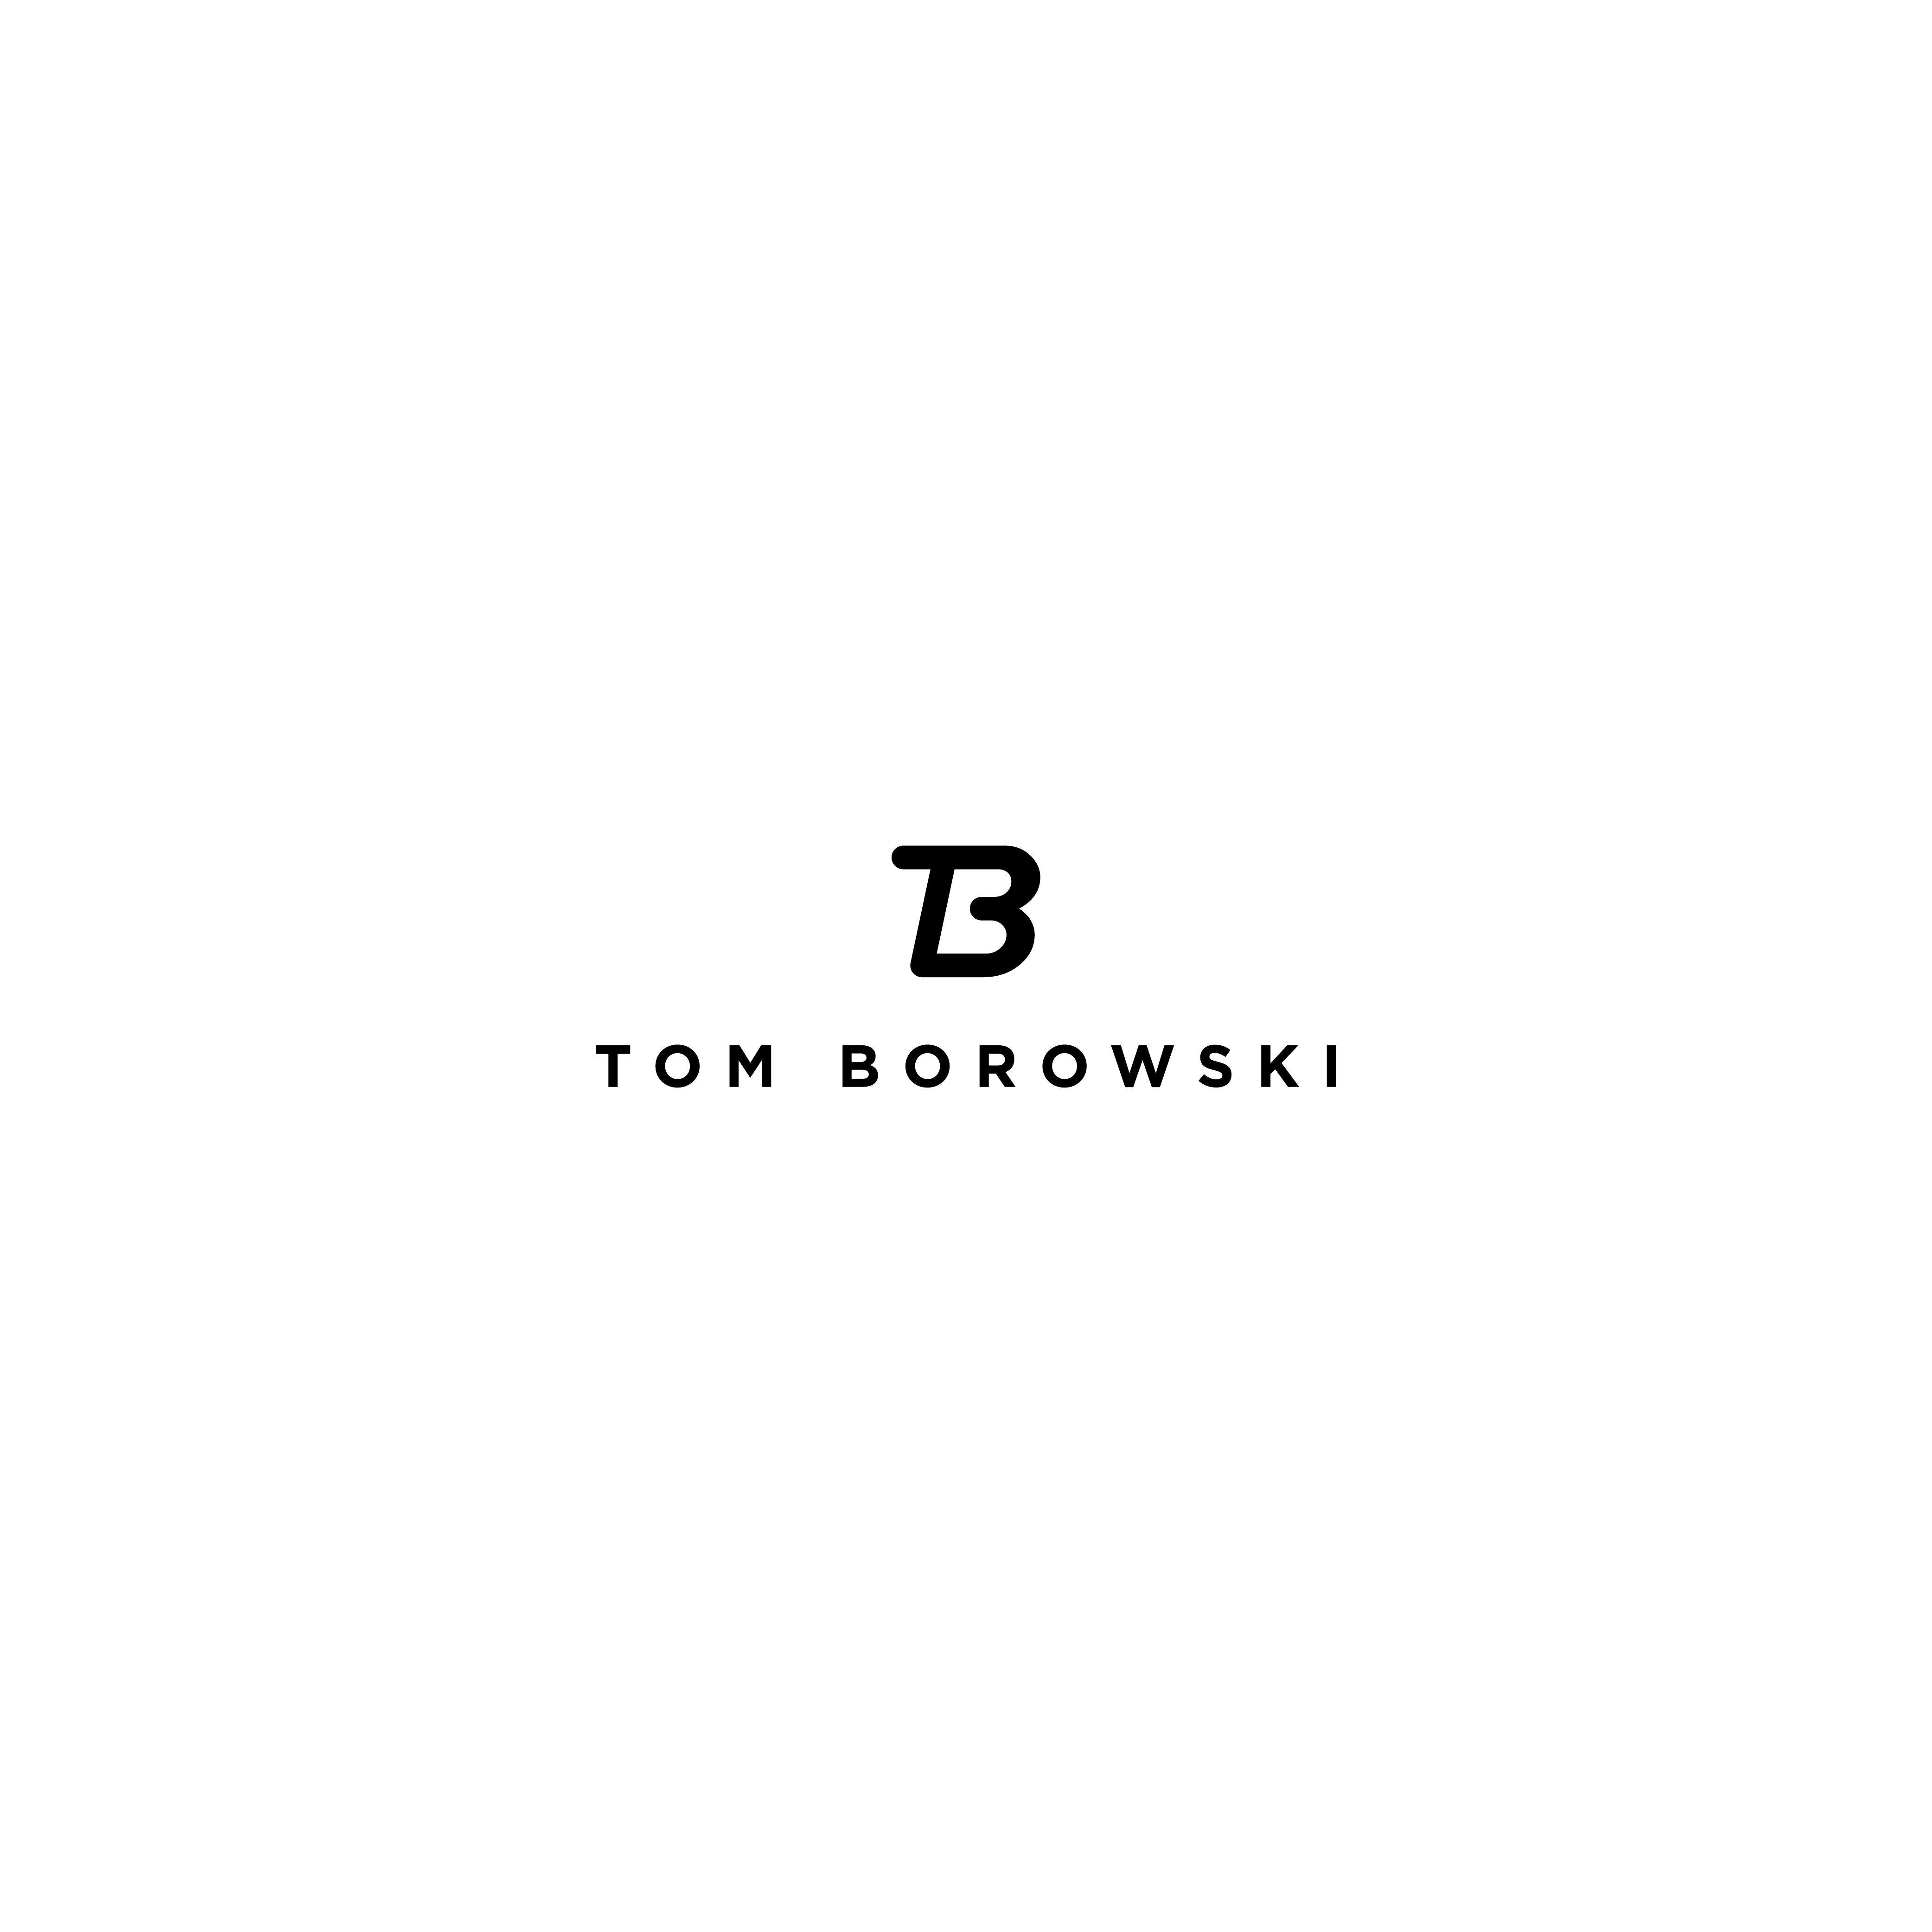 E-Commerce/Amazon company looking for a new brand logo